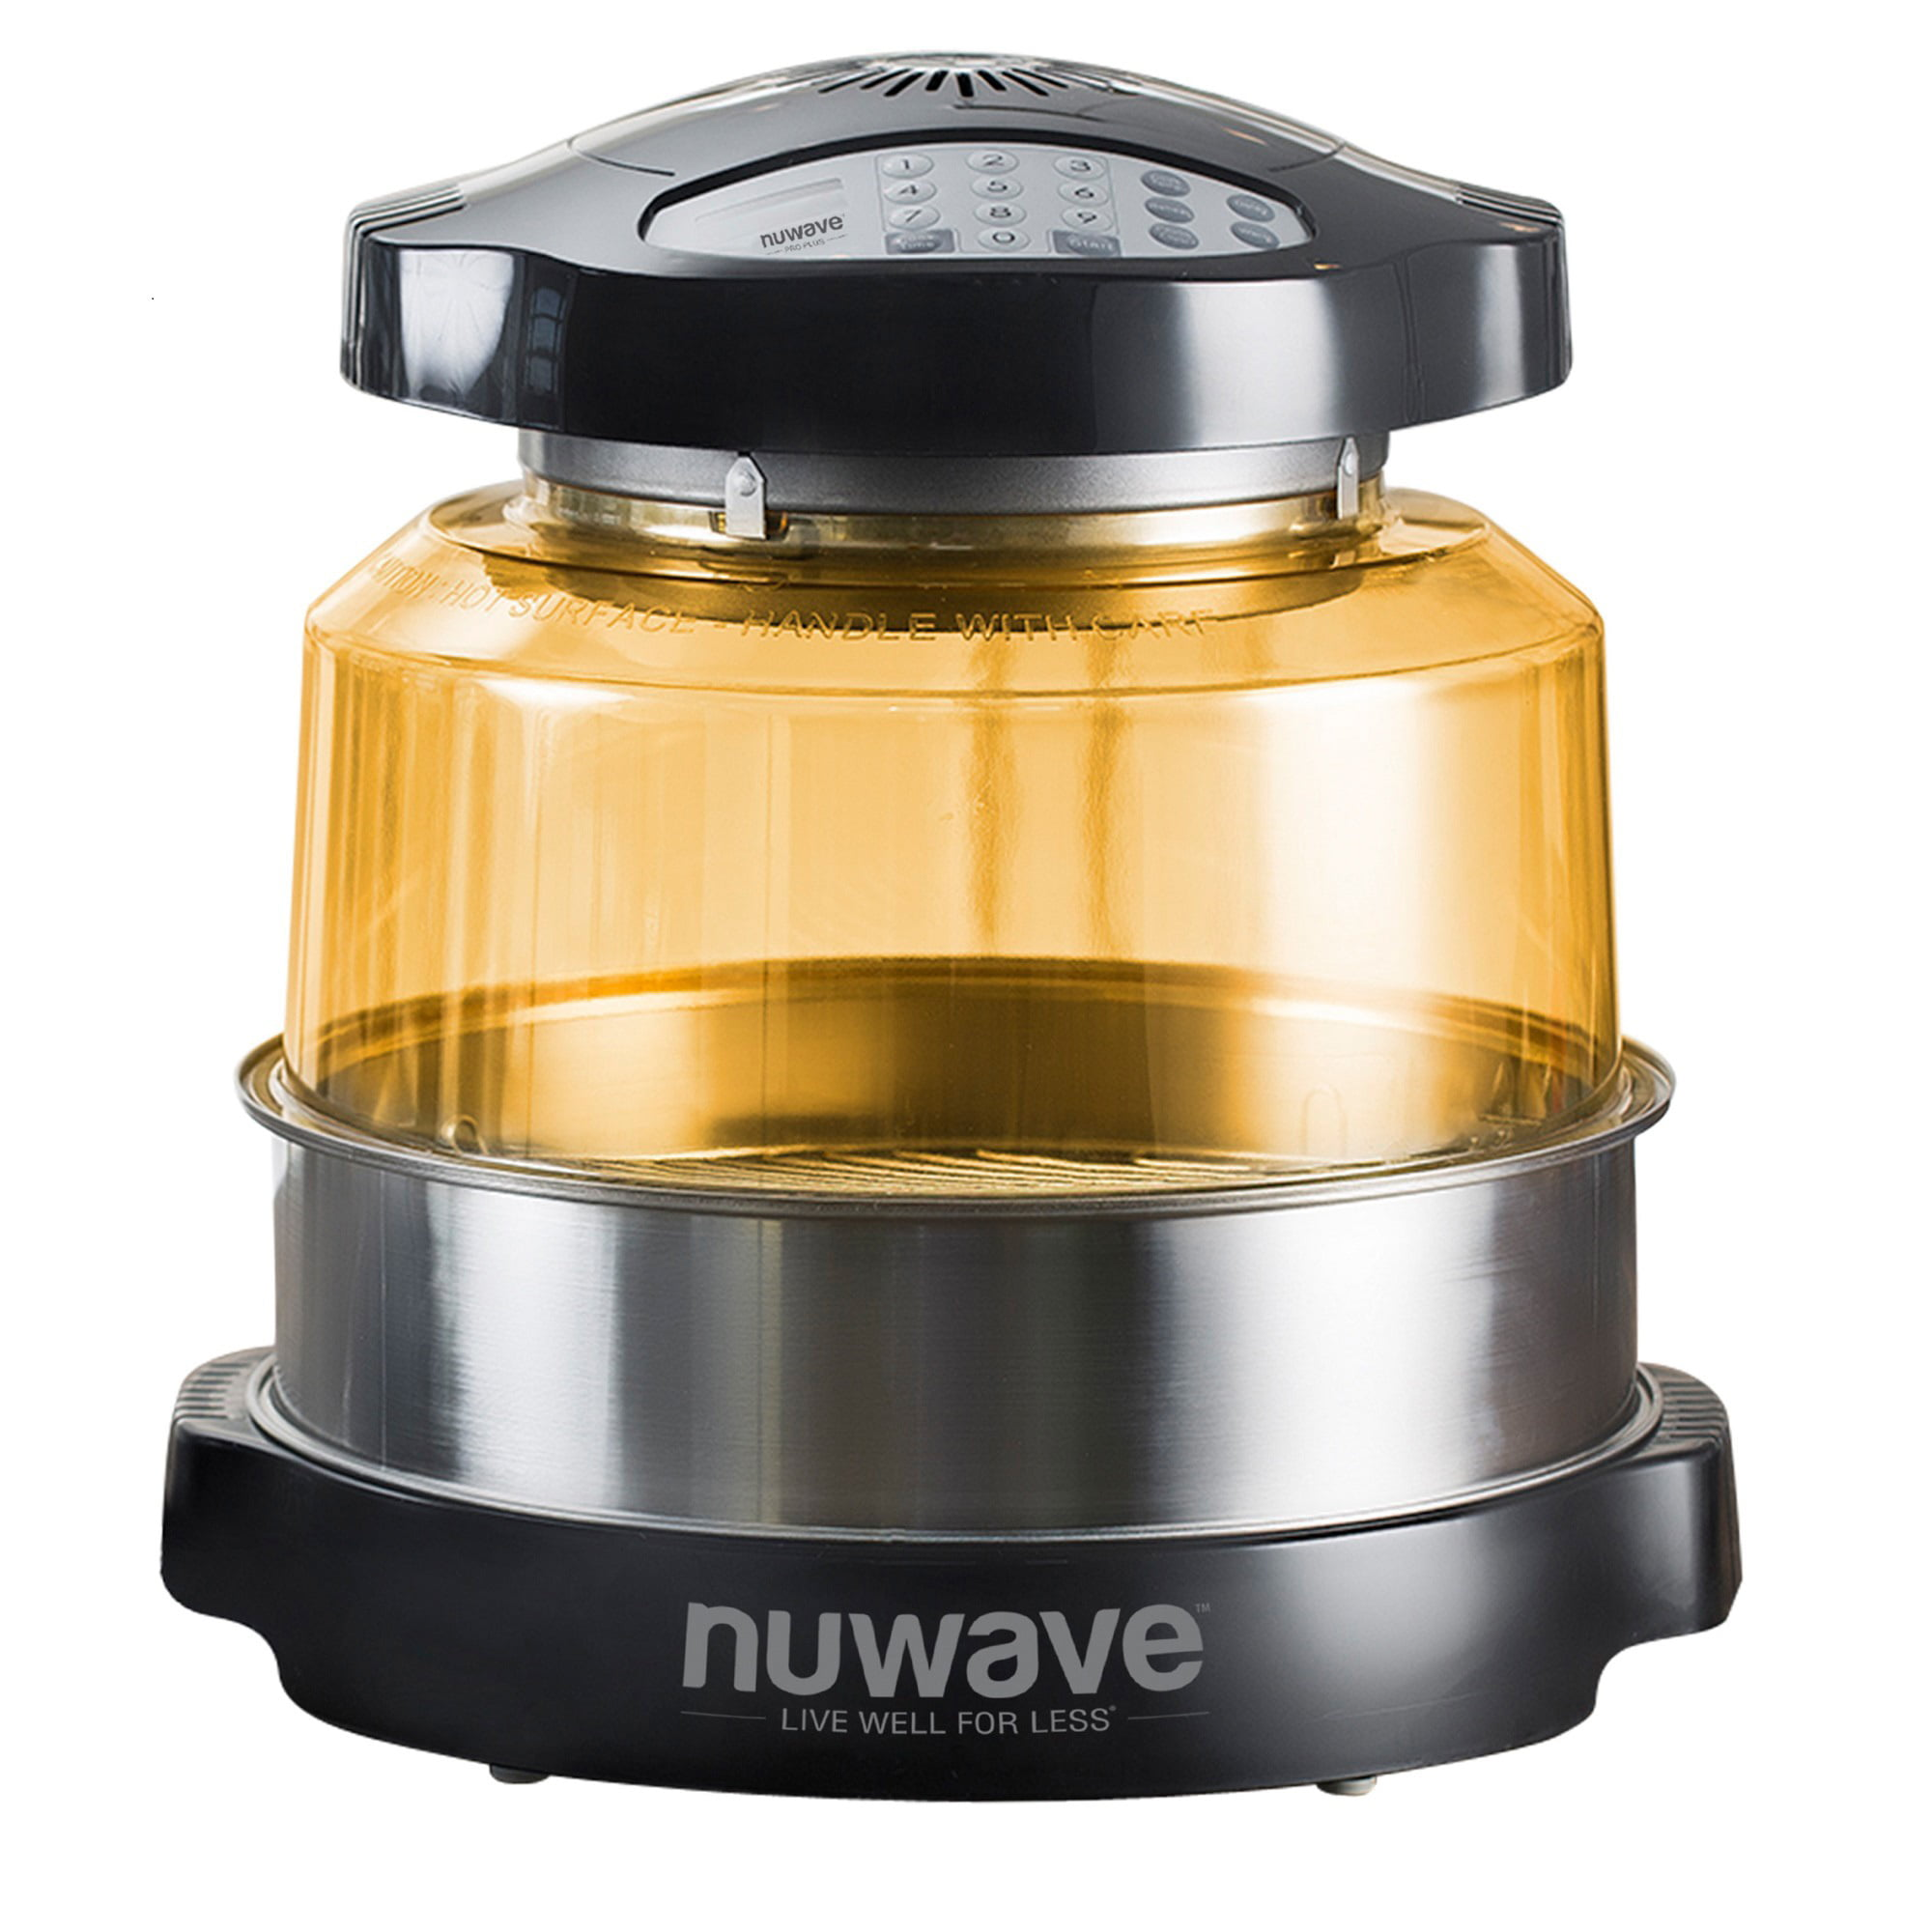 NuWave Oven Pro Plus with Extender Ring Kit